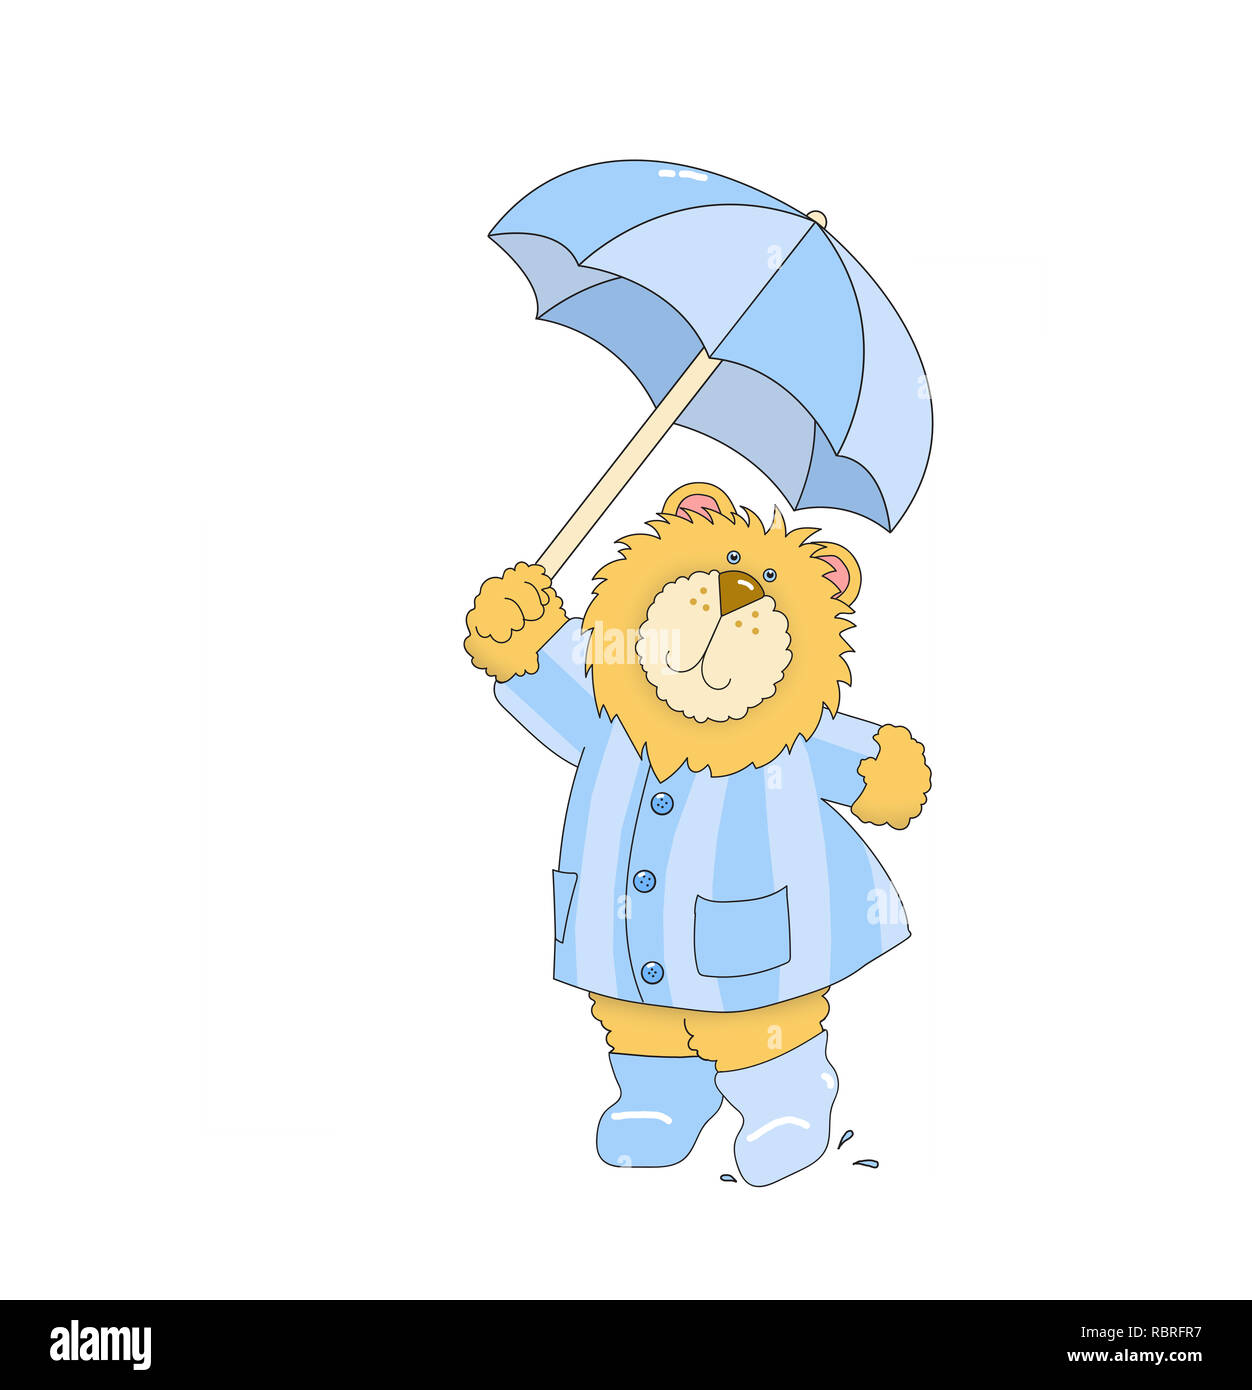 Illustration of a lion wearing a blue striped raincoat and boots, holding an umbrella against a white background - Stock Image